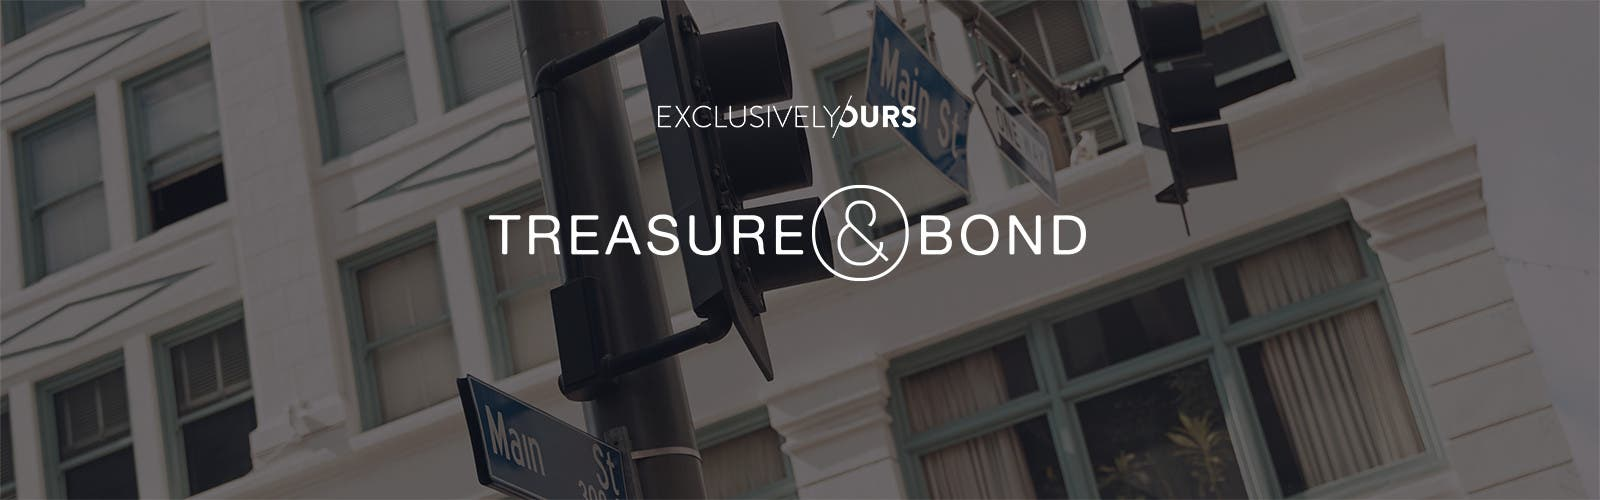 9b8c76d3295 Exclusively ours  Treasure   Bond.